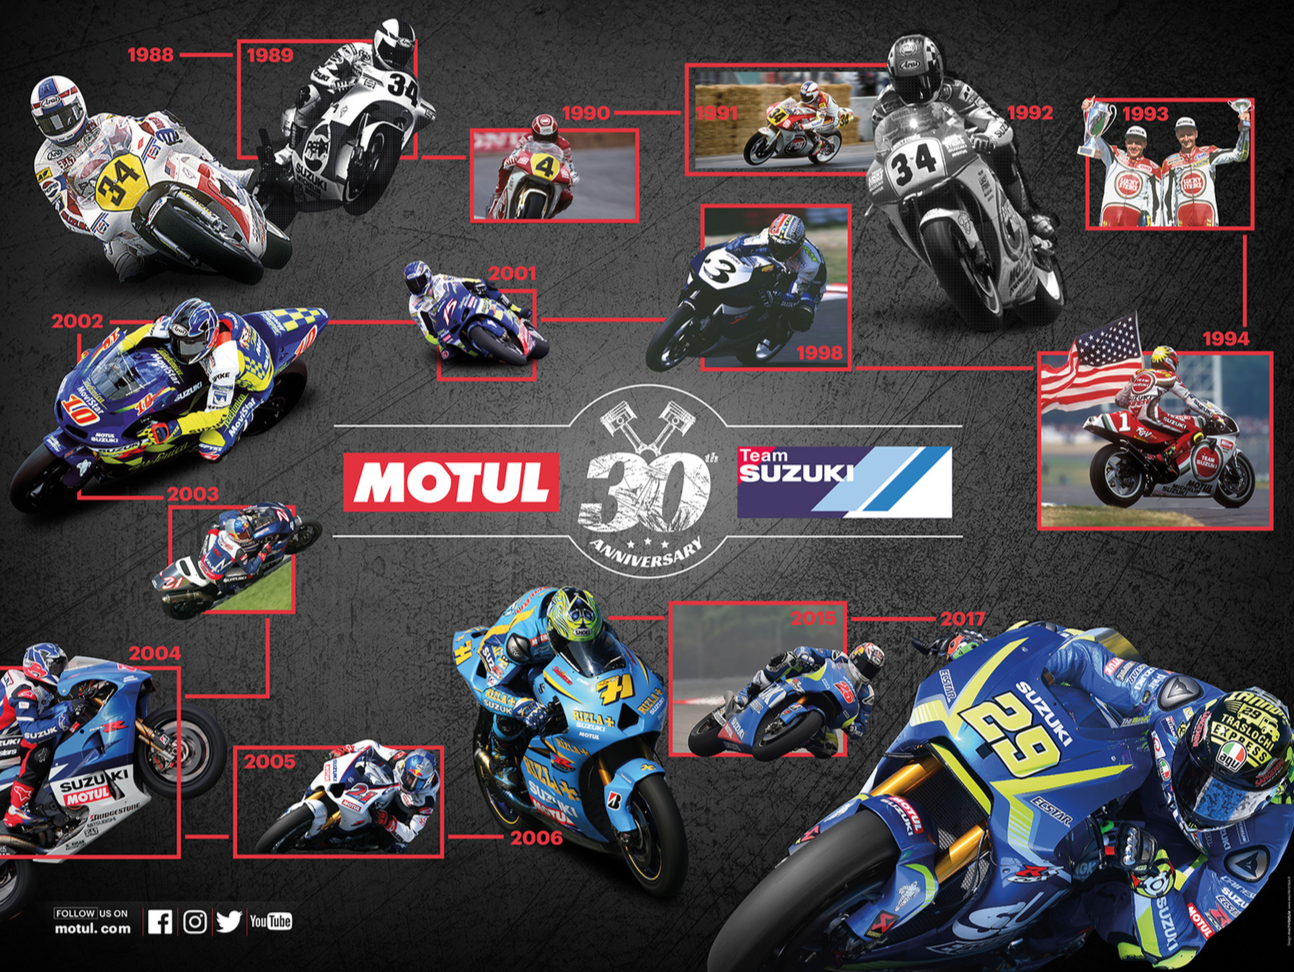 Motul and Suzuki celebrate 30 years of collaboration in MotoGP